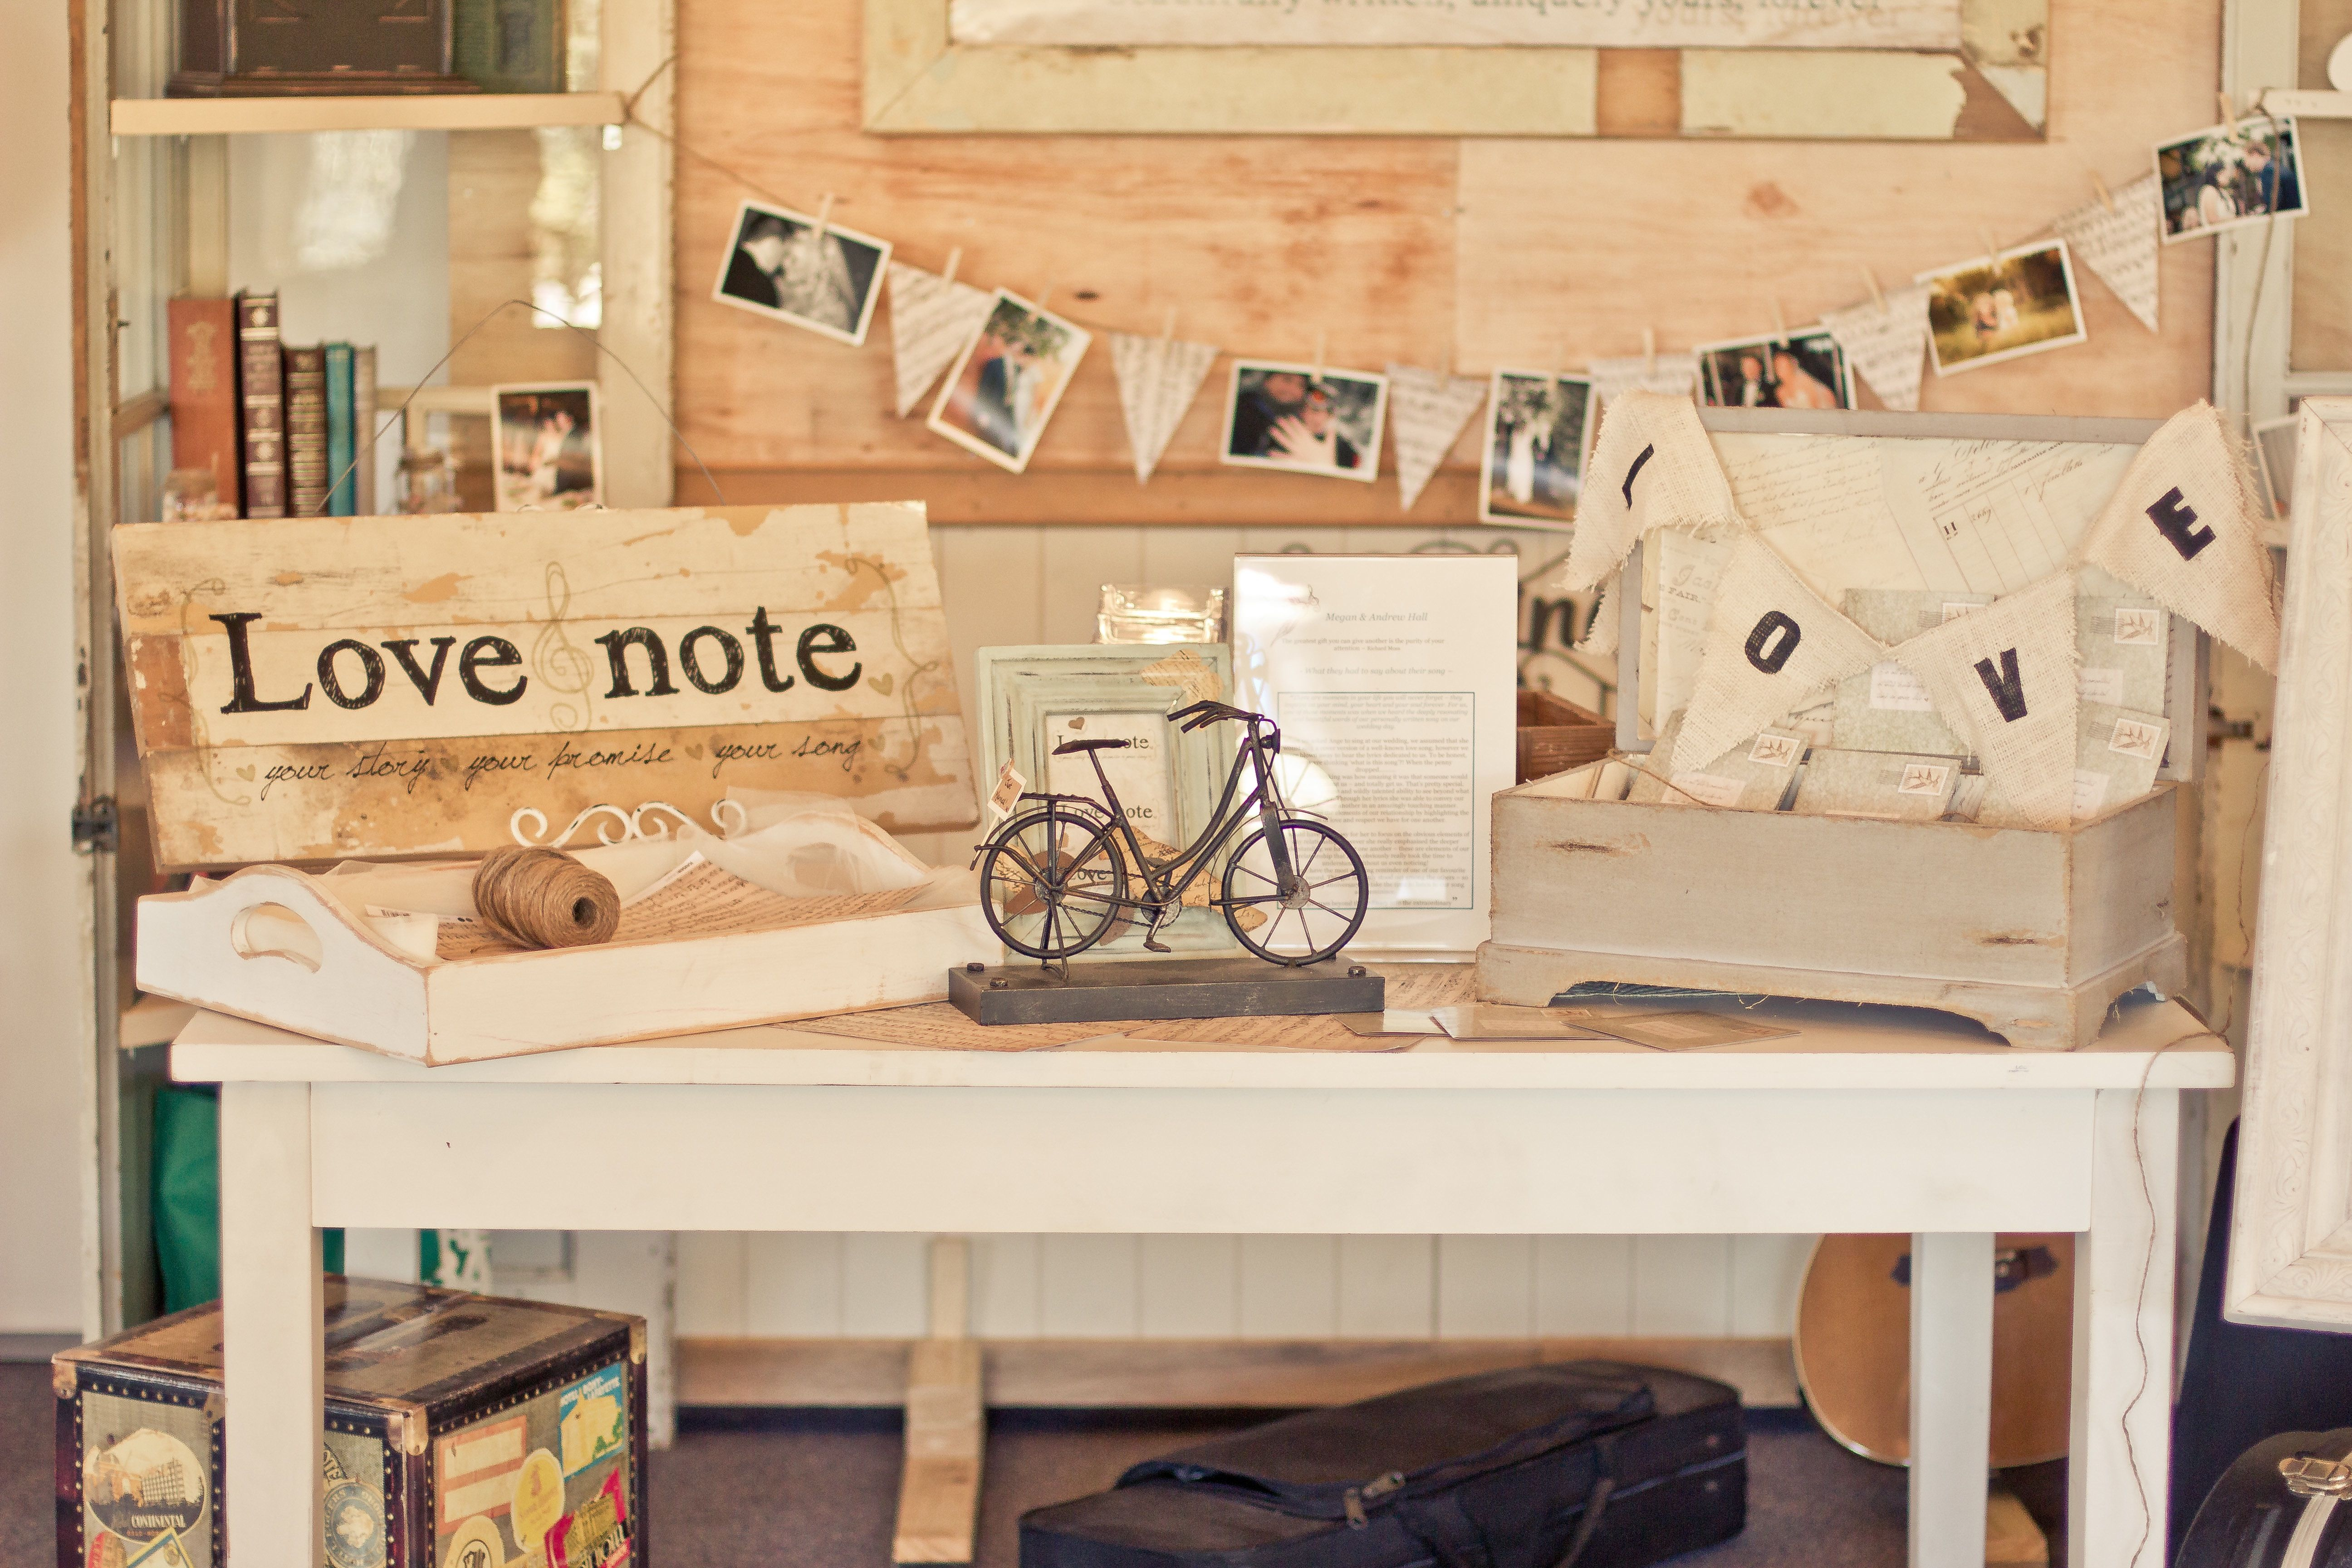 Exhibition Stand Vintage : Love note wedding expo stall retro spin on a recycled